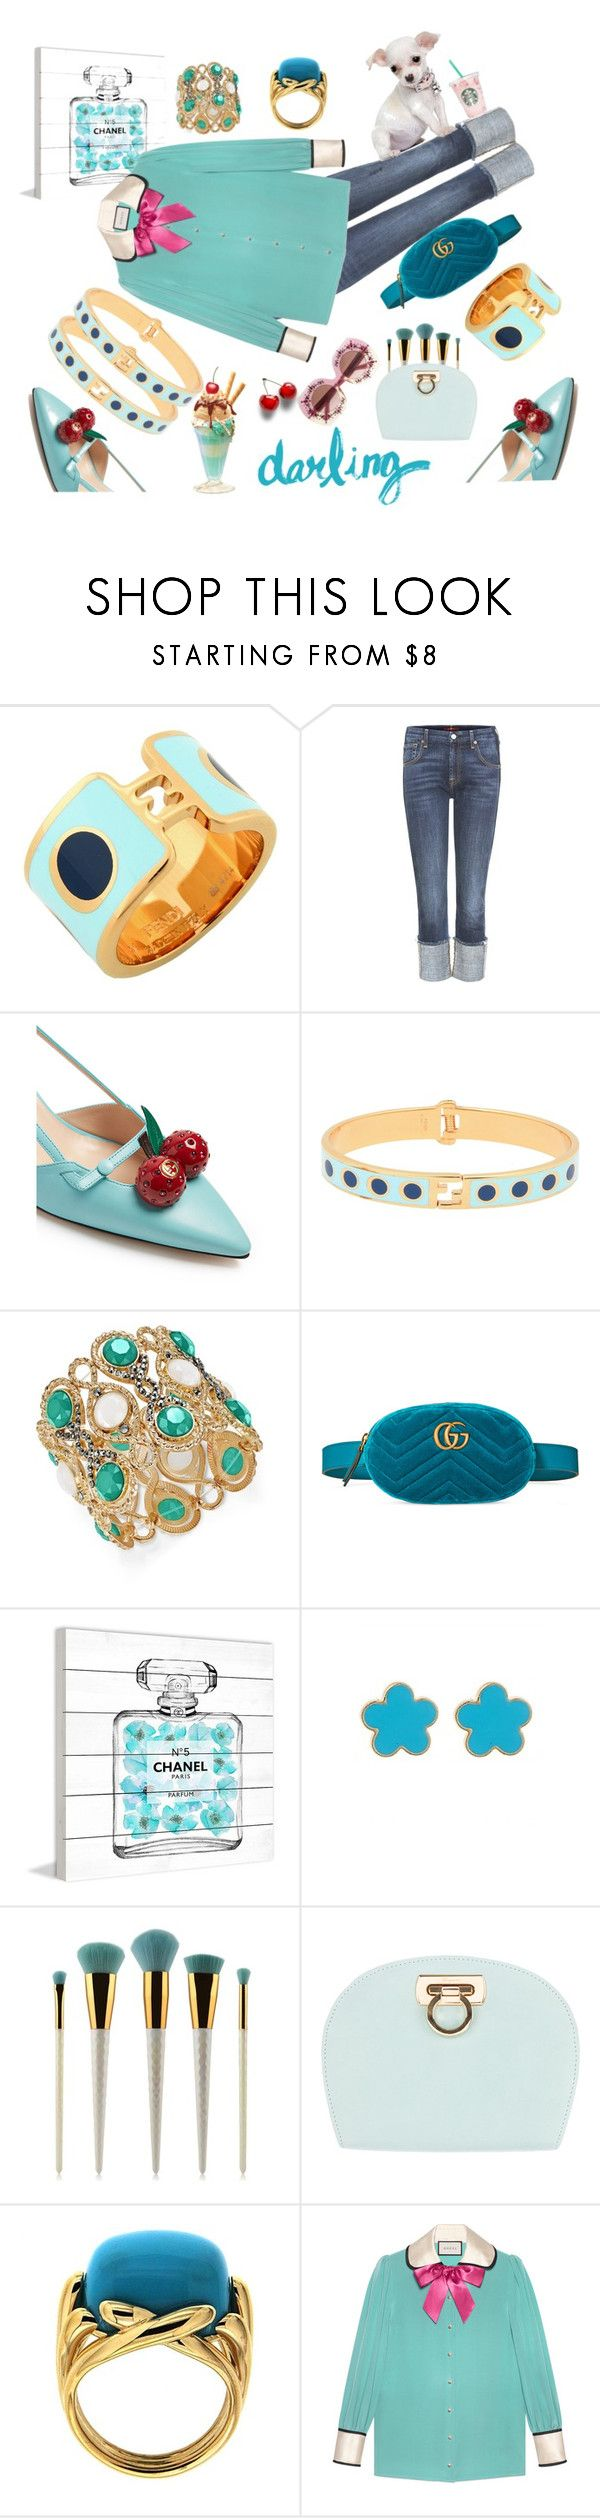 """""""Style your jeans"""" by ellenfischerbeauty ❤ liked on Polyvore featuring Fendi, 7 For All Mankind, Gucci, INC International Concepts, Marmont Hill, Fornash, Salvatore Ferragamo, Valentin Magro and Dolce&Gabbana"""